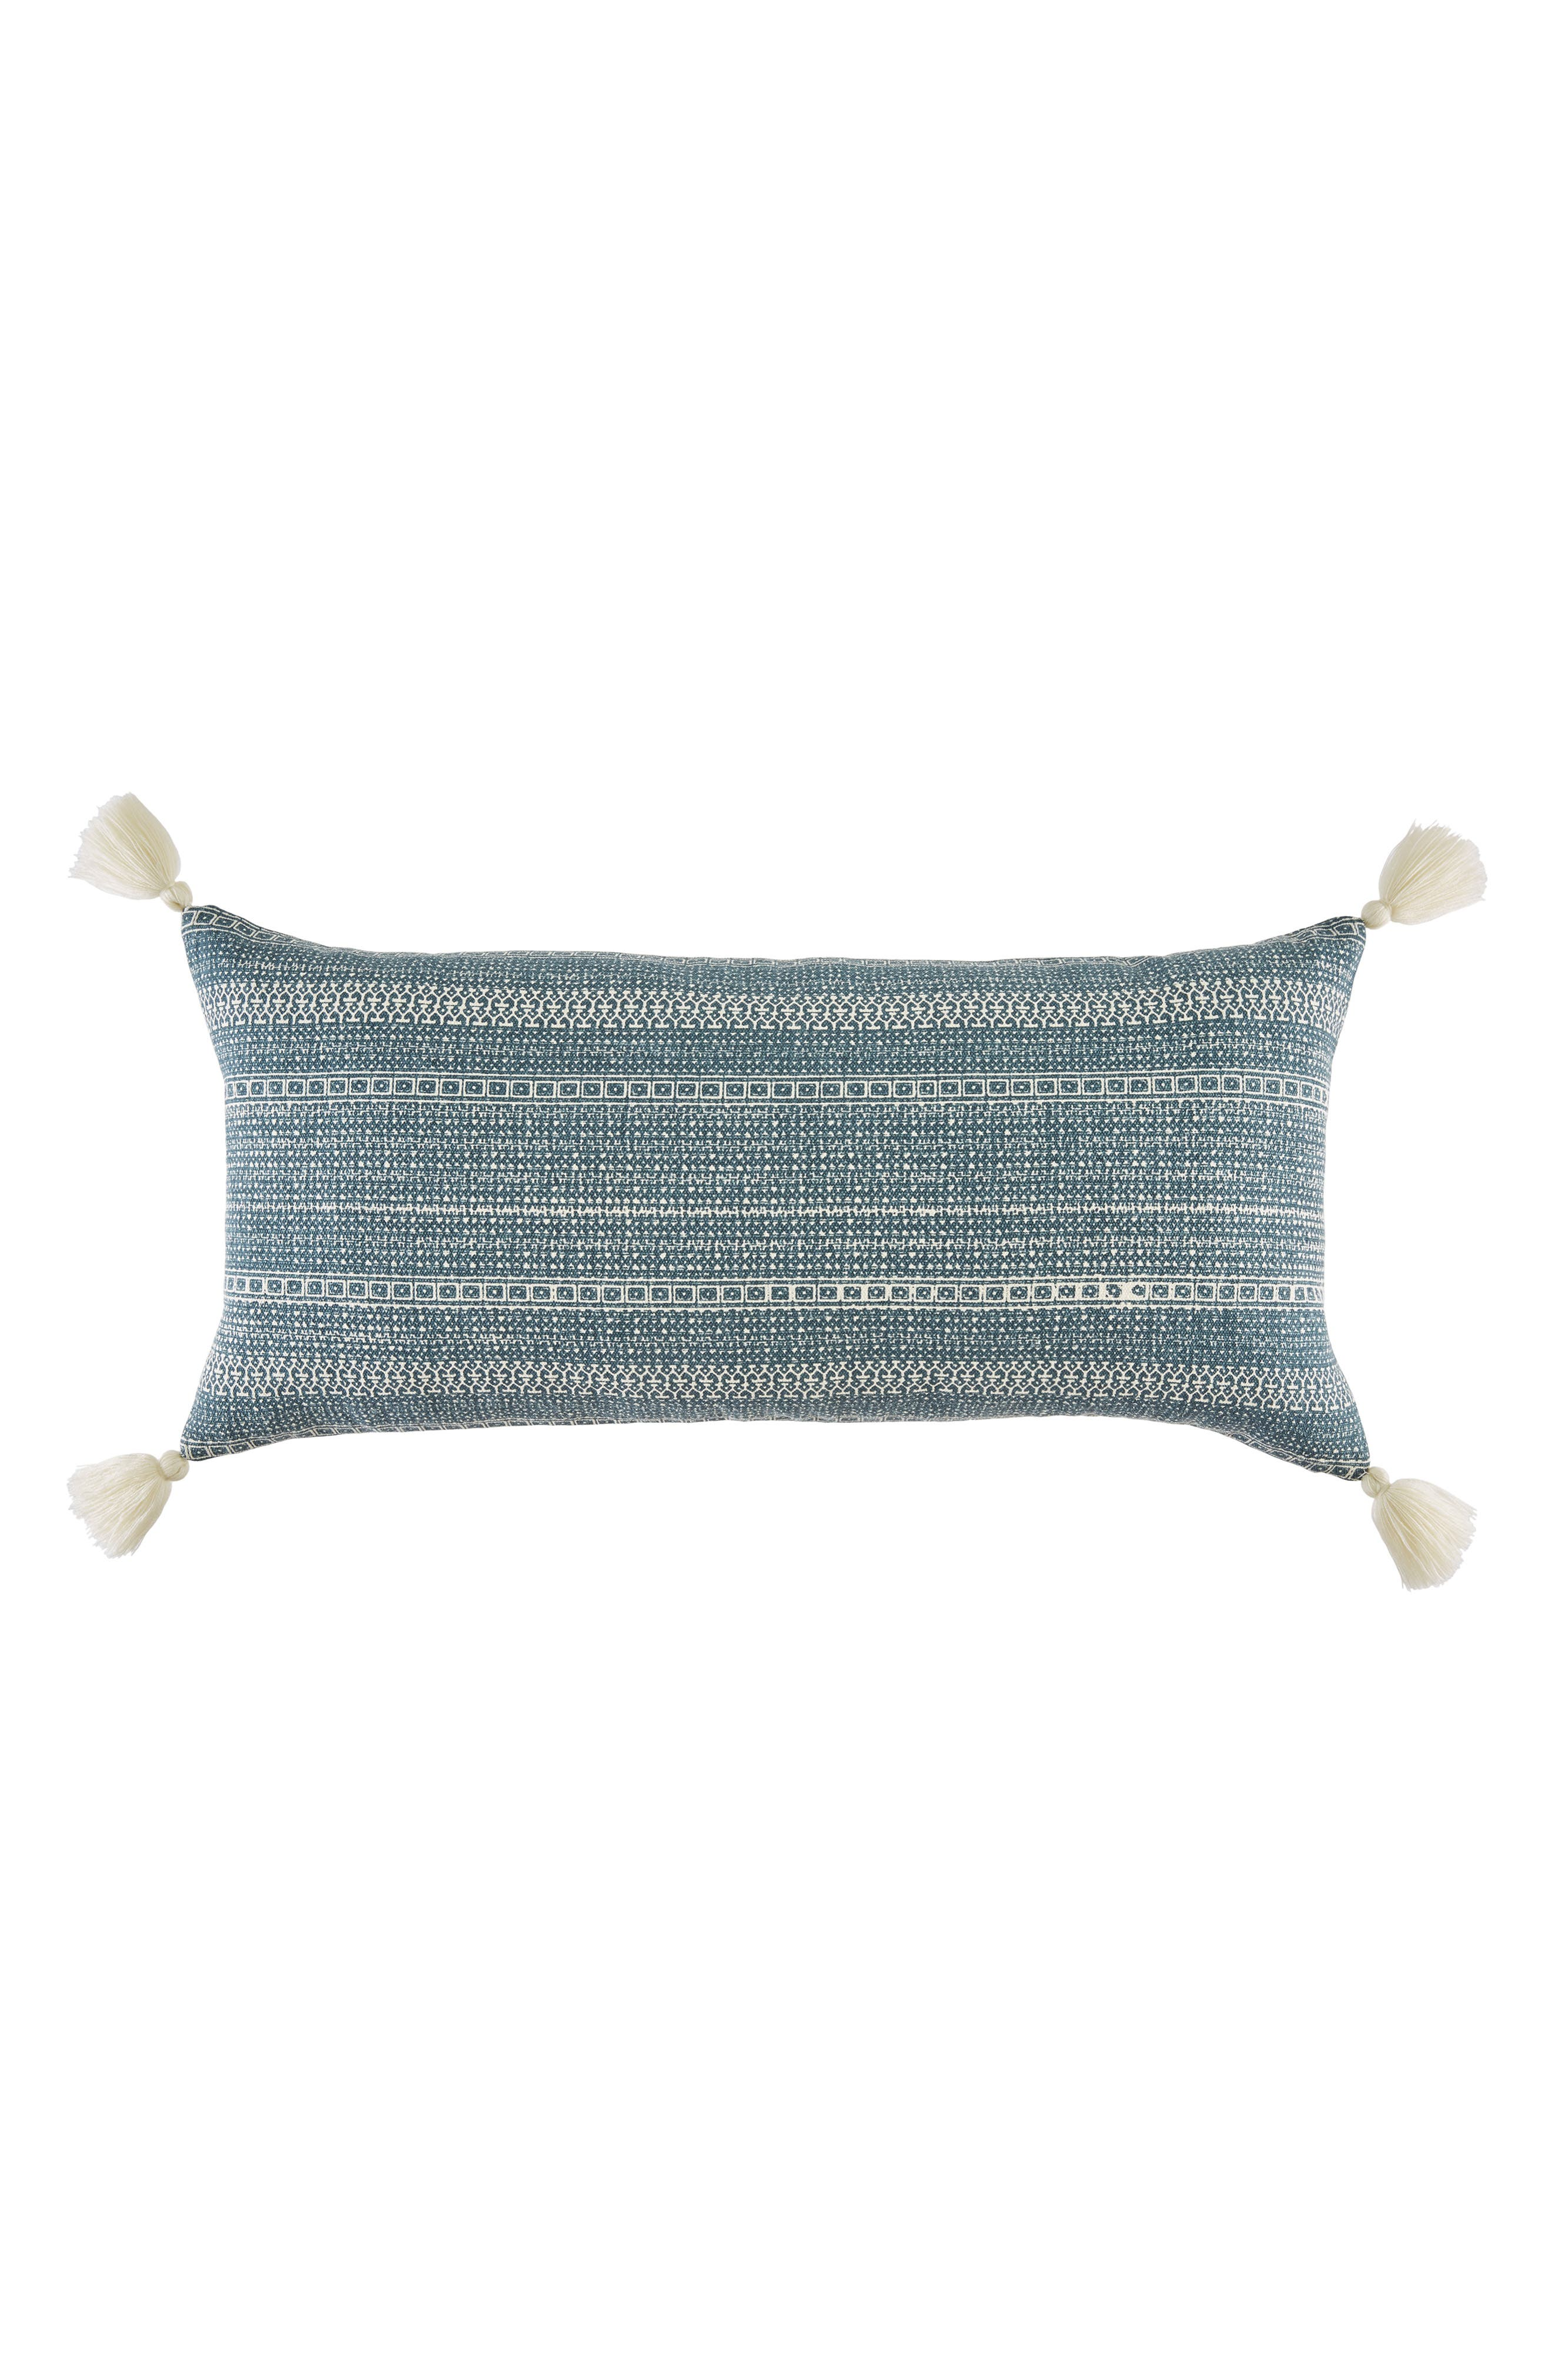 DwellStudio Sumi Accent Pillow